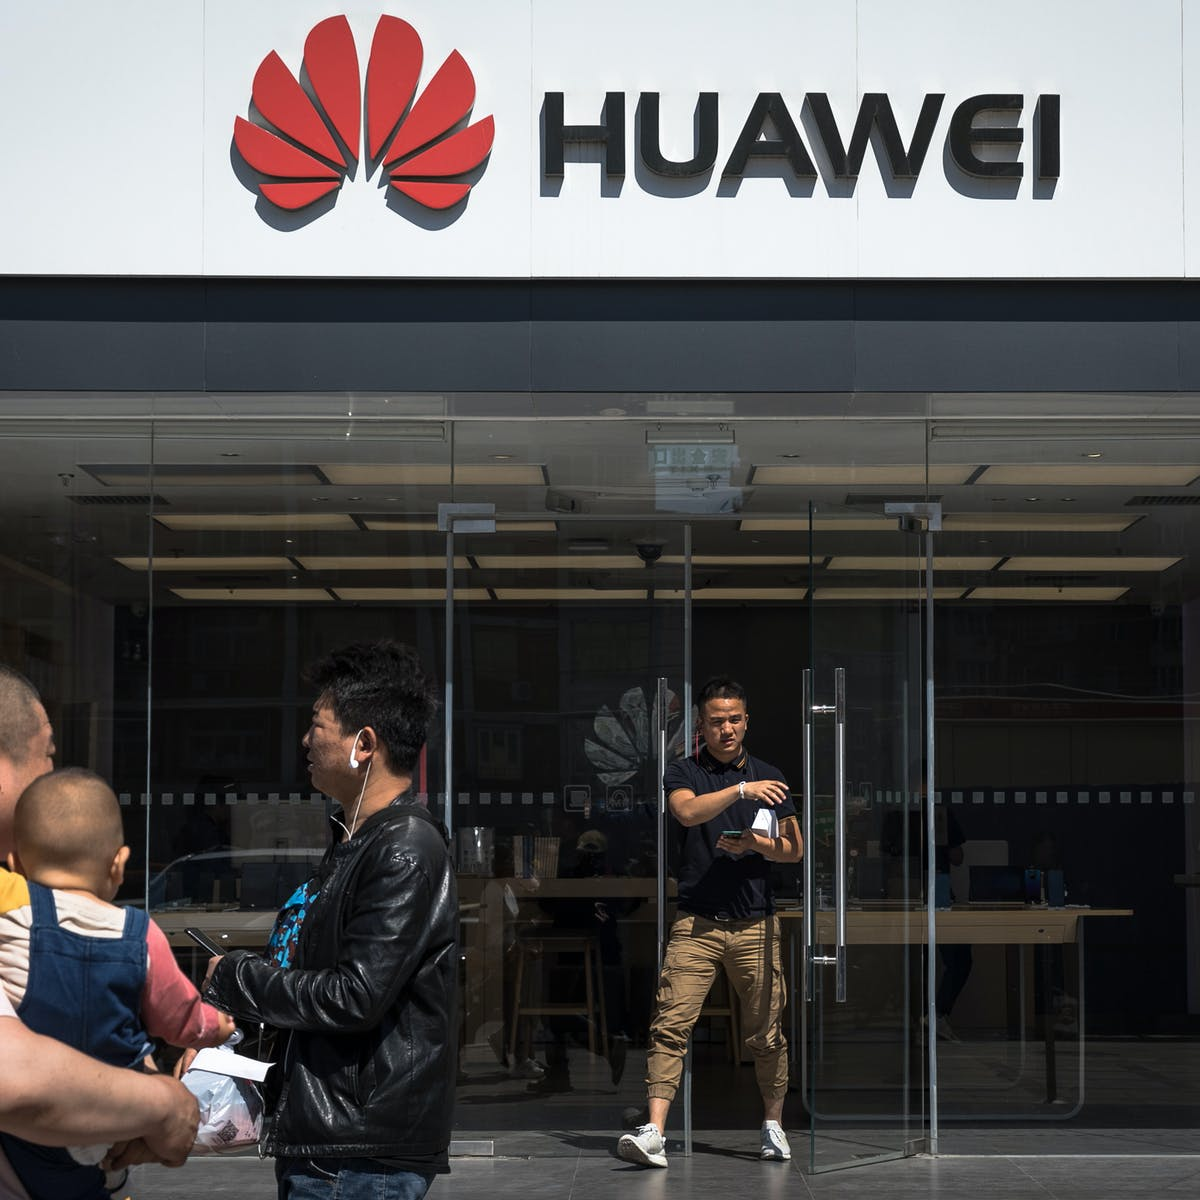 5G Speeds Australia blocking huawei from australia means slower and delayed 5g